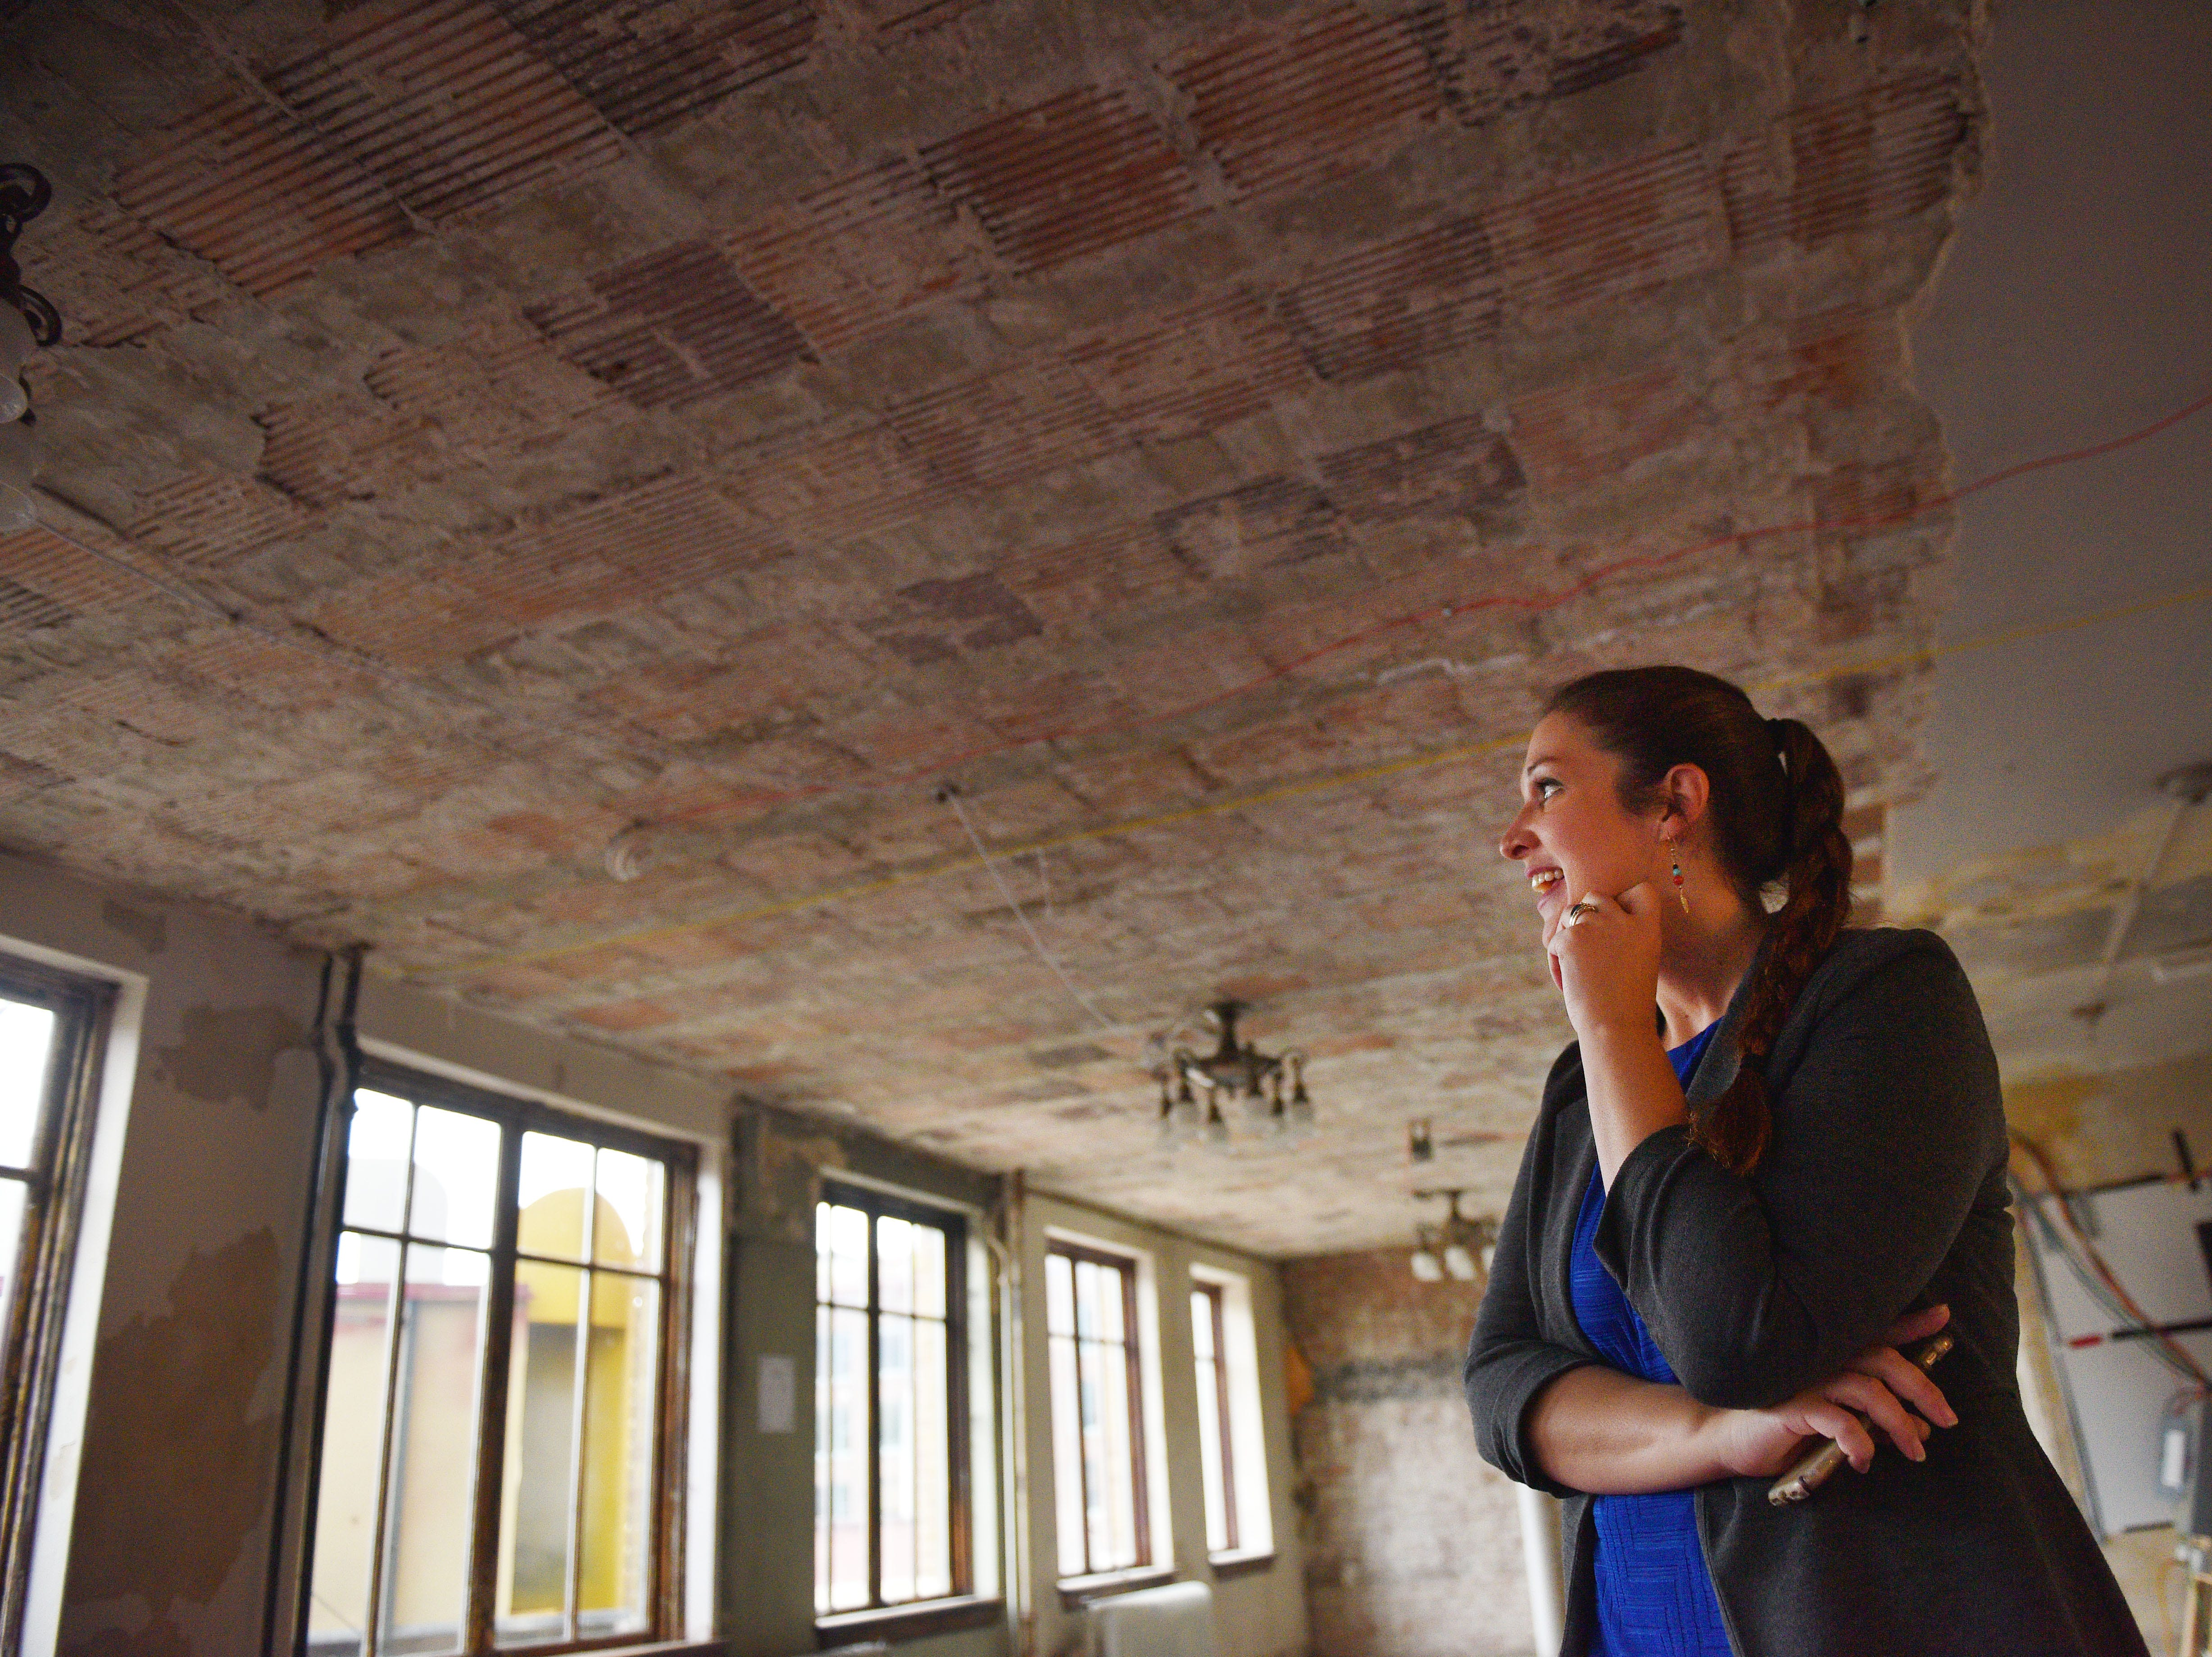 Development coordinator Allison Weiland gives a tour of the State Theatre Tuesday, Oct. 2, in downtown Sioux Falls. The State Theatre has been undergoing updates and renovations.